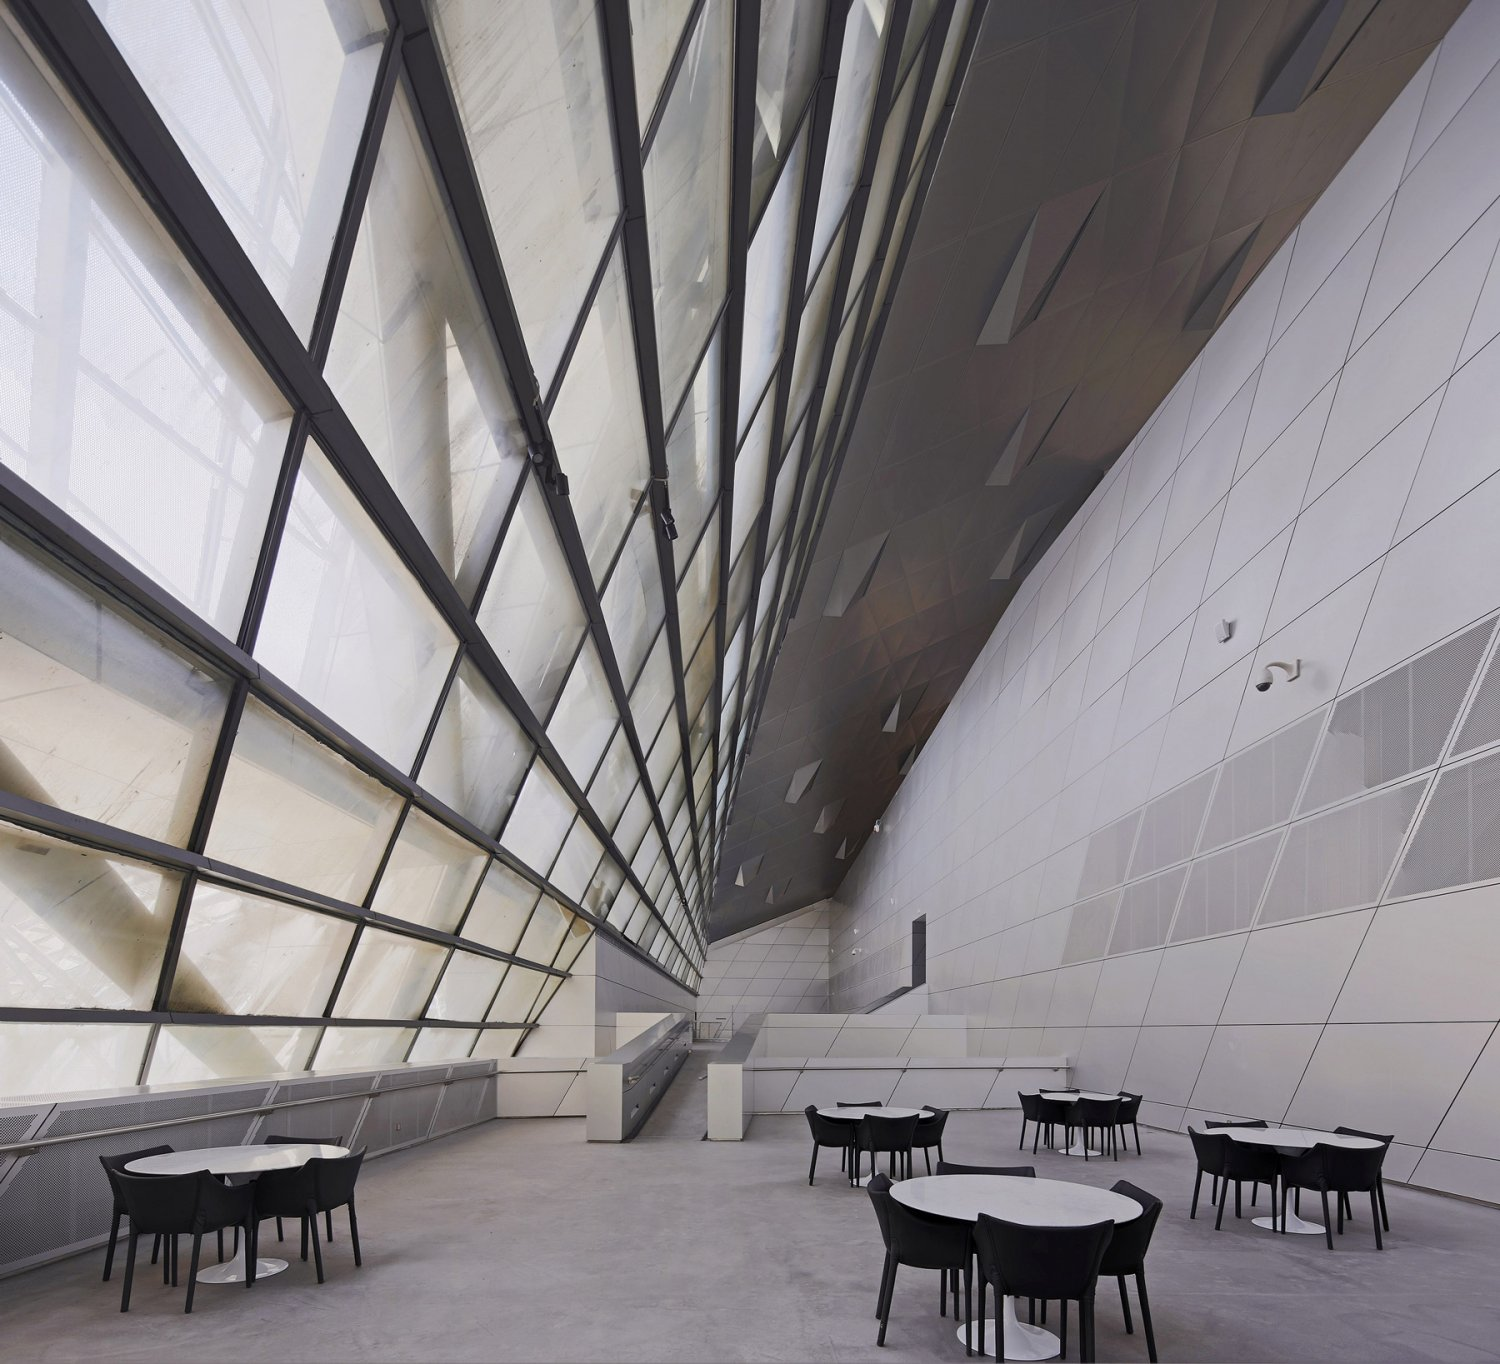 Int Design: Dalian Int. Conference Center